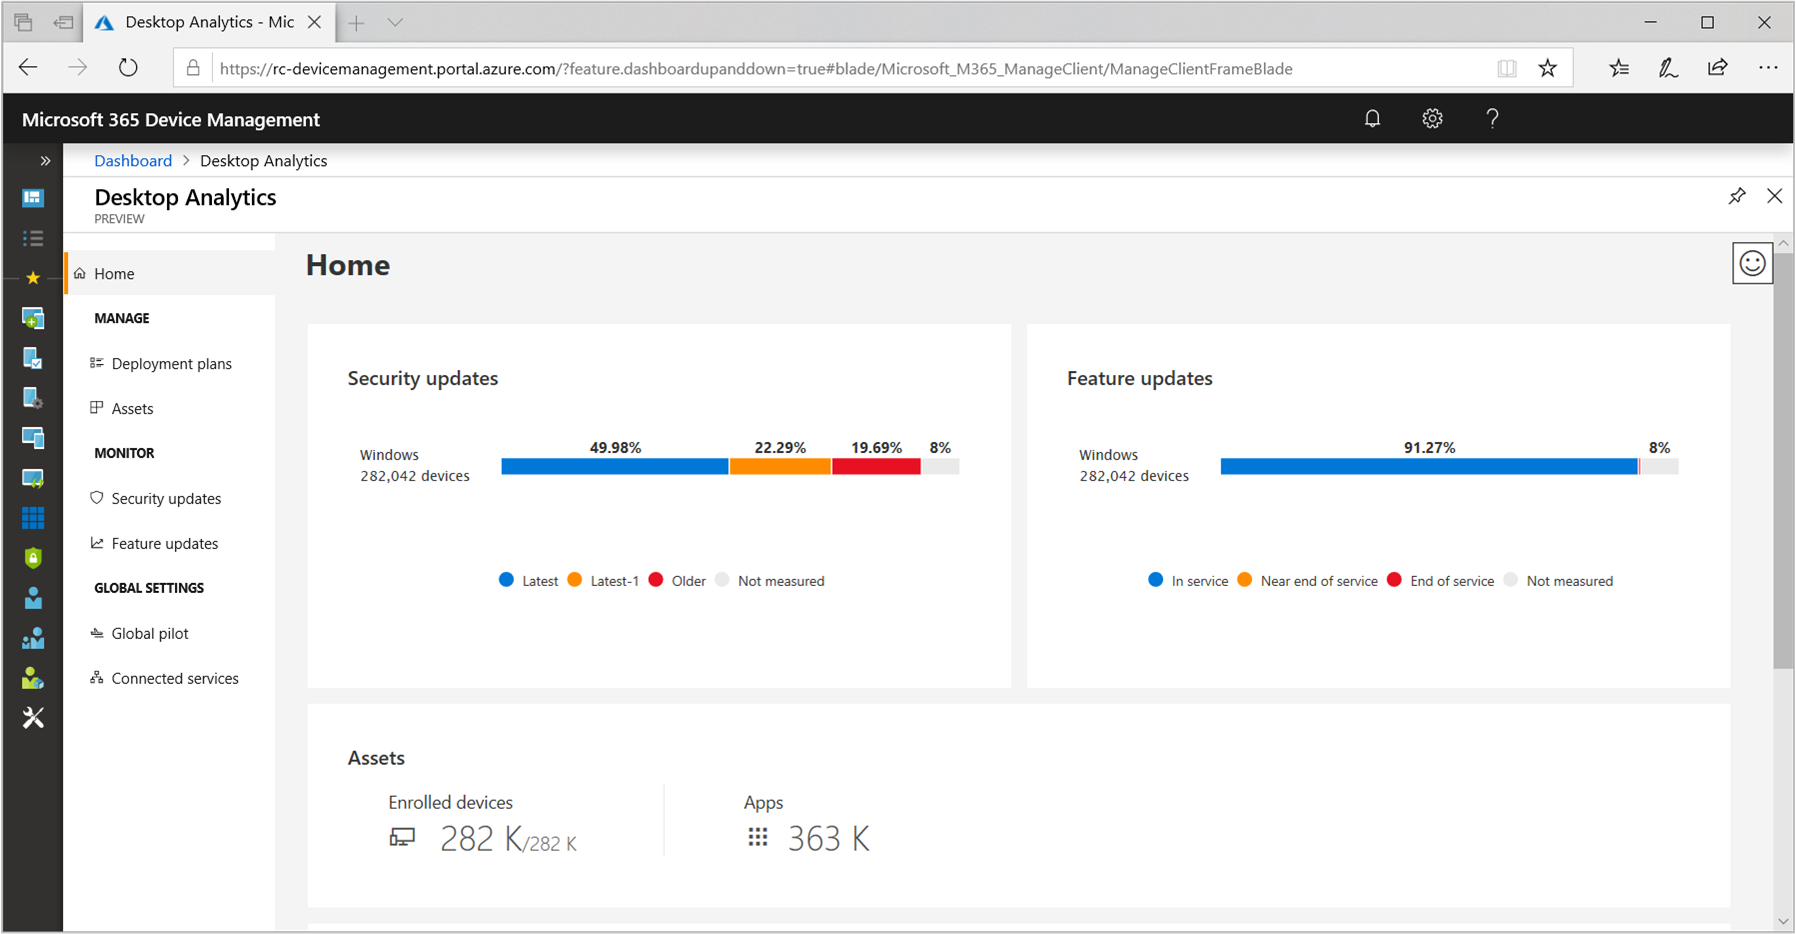 Screenshot of the Desktop Analytics home page in the Azure portal